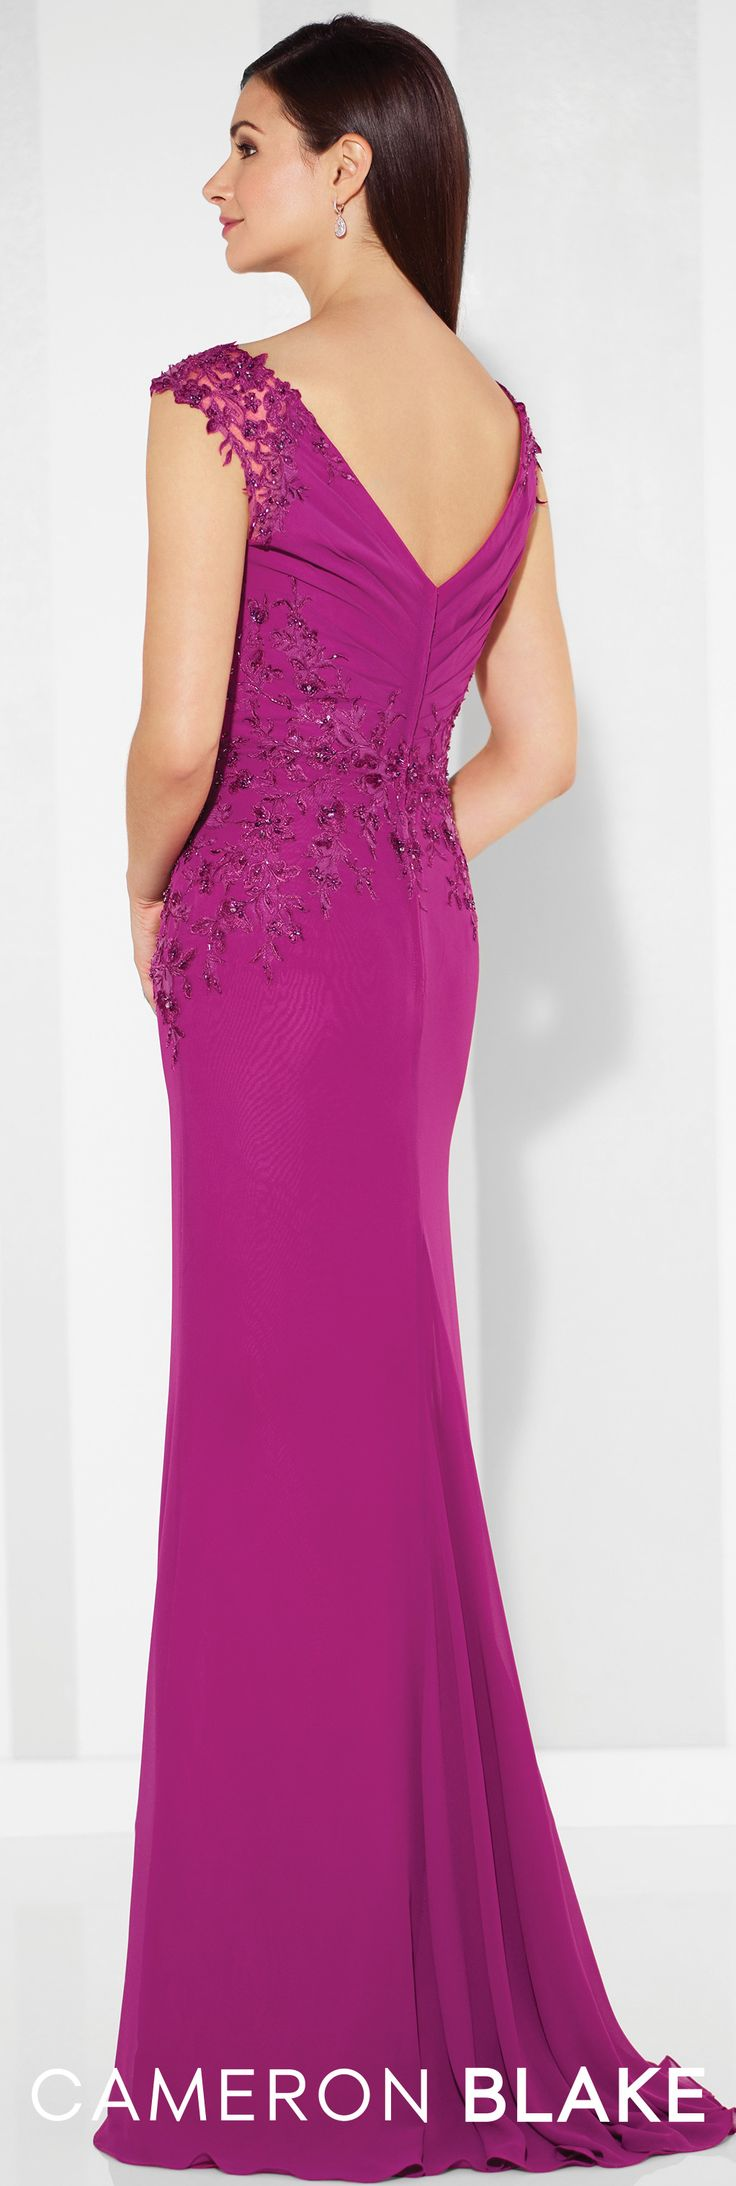 Formal Evening Gowns by Mon Cheri - Spring 2017 - Style No. 117616 - berry chiffon evening dress with lace trimmed cap sleeves